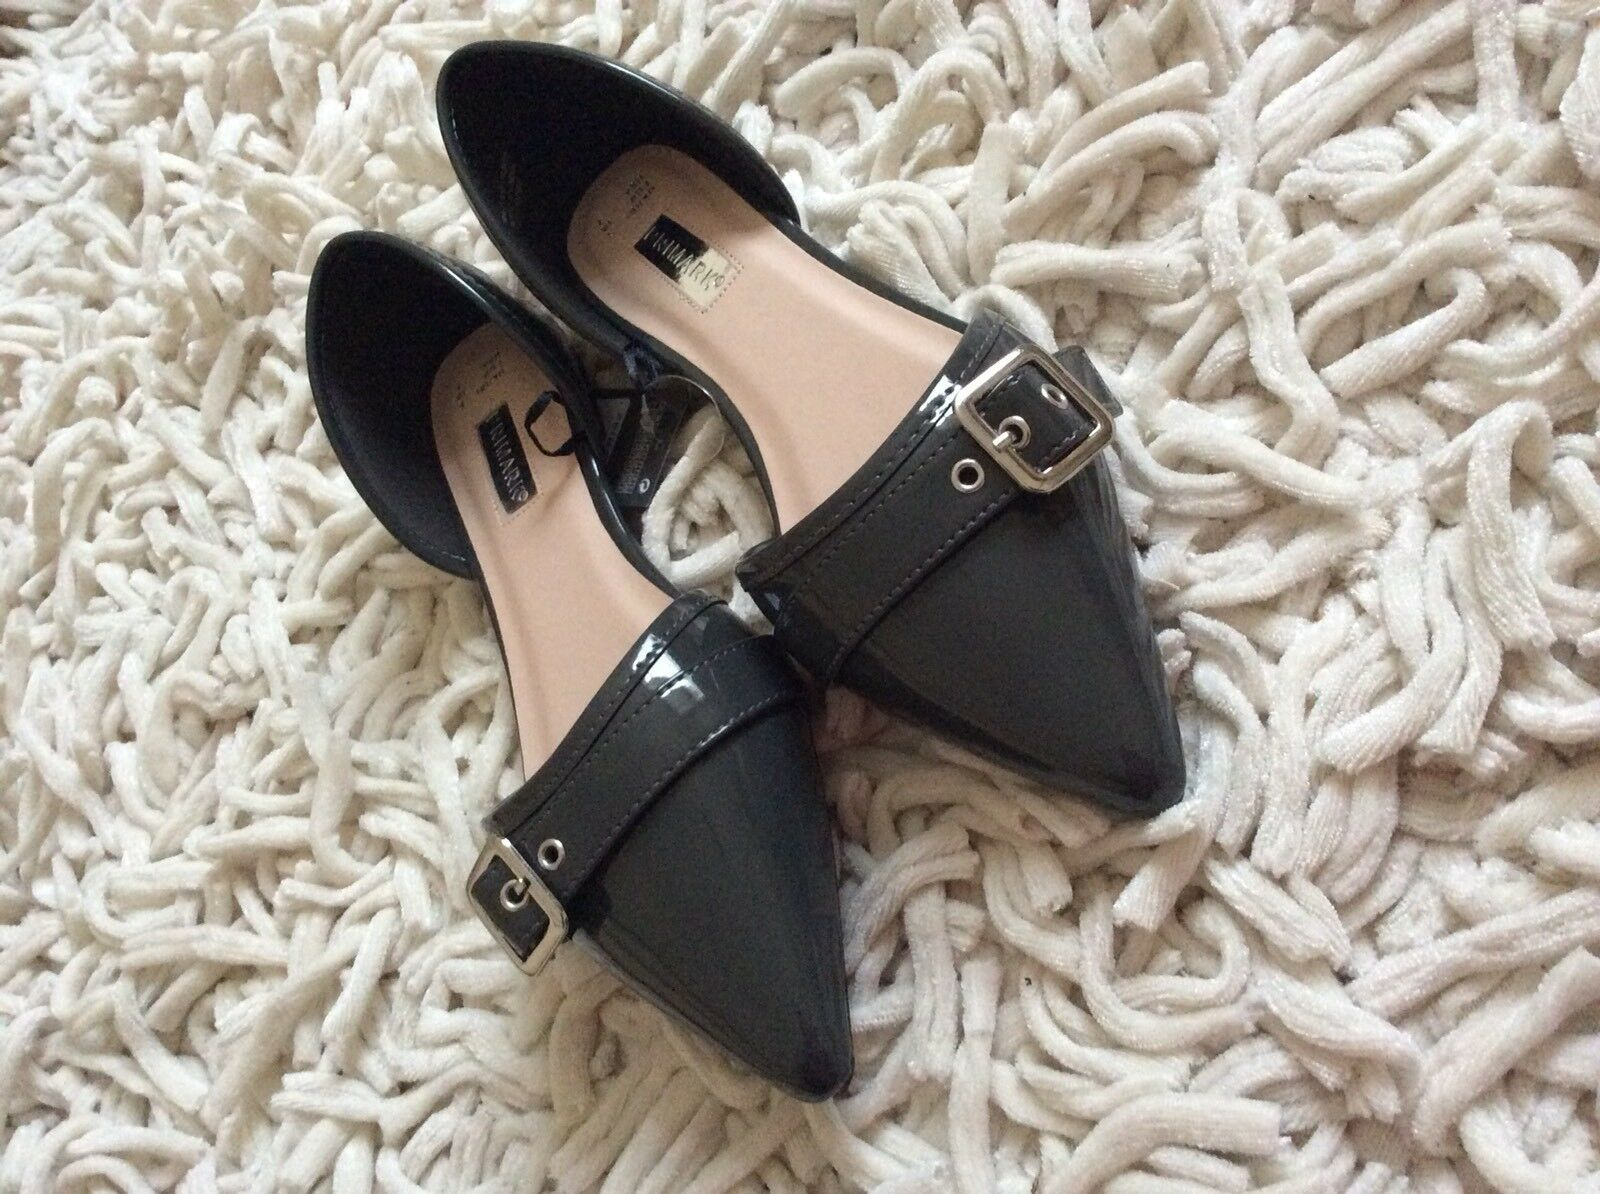 Primark Mules Loafers Flat Shoes Size Uk 8 EUR 42 BNWT!